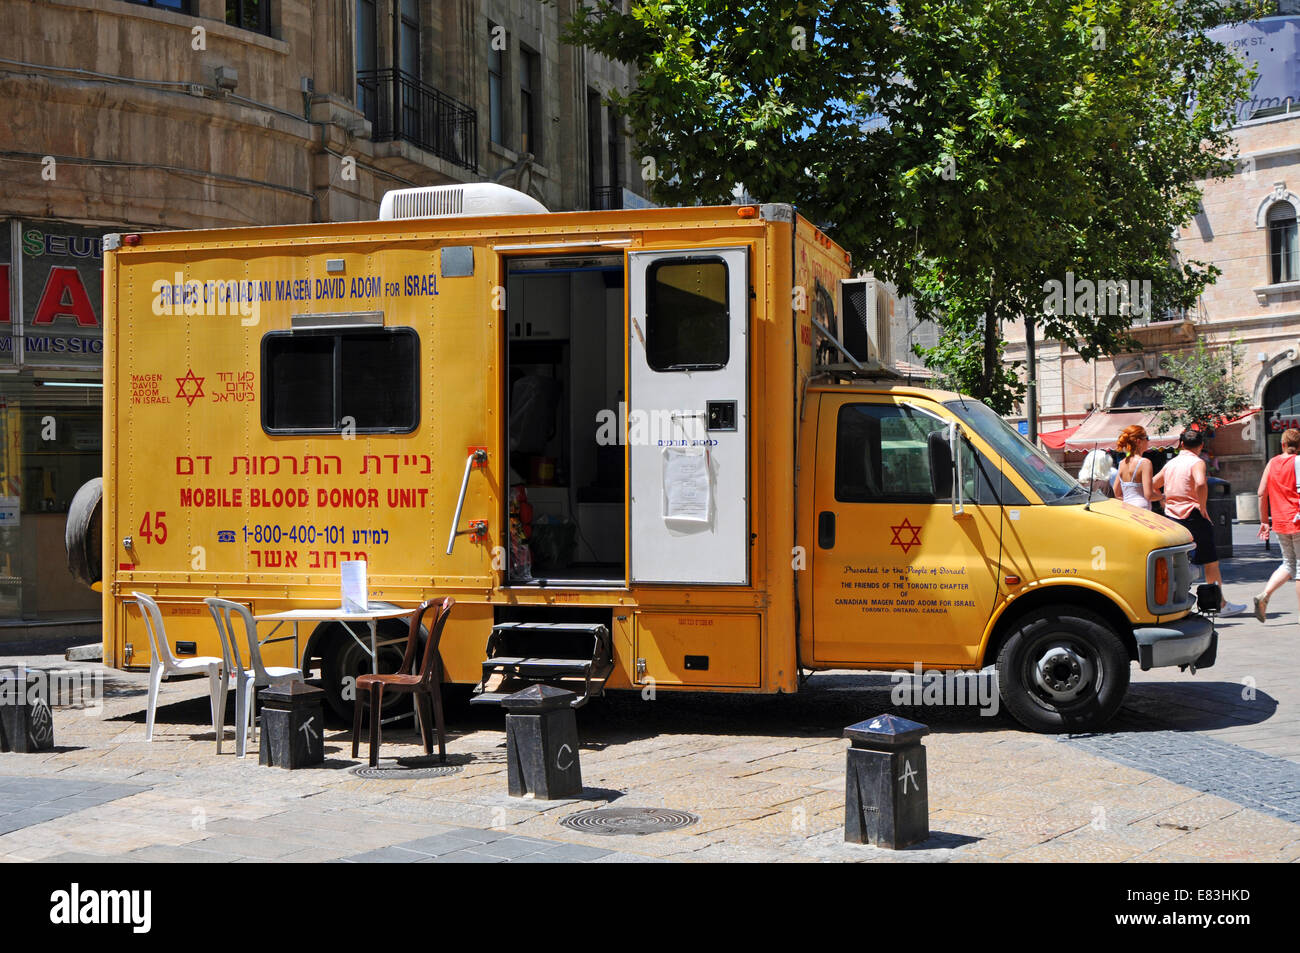 Mobile blood donor unit, Israel - Stock Image